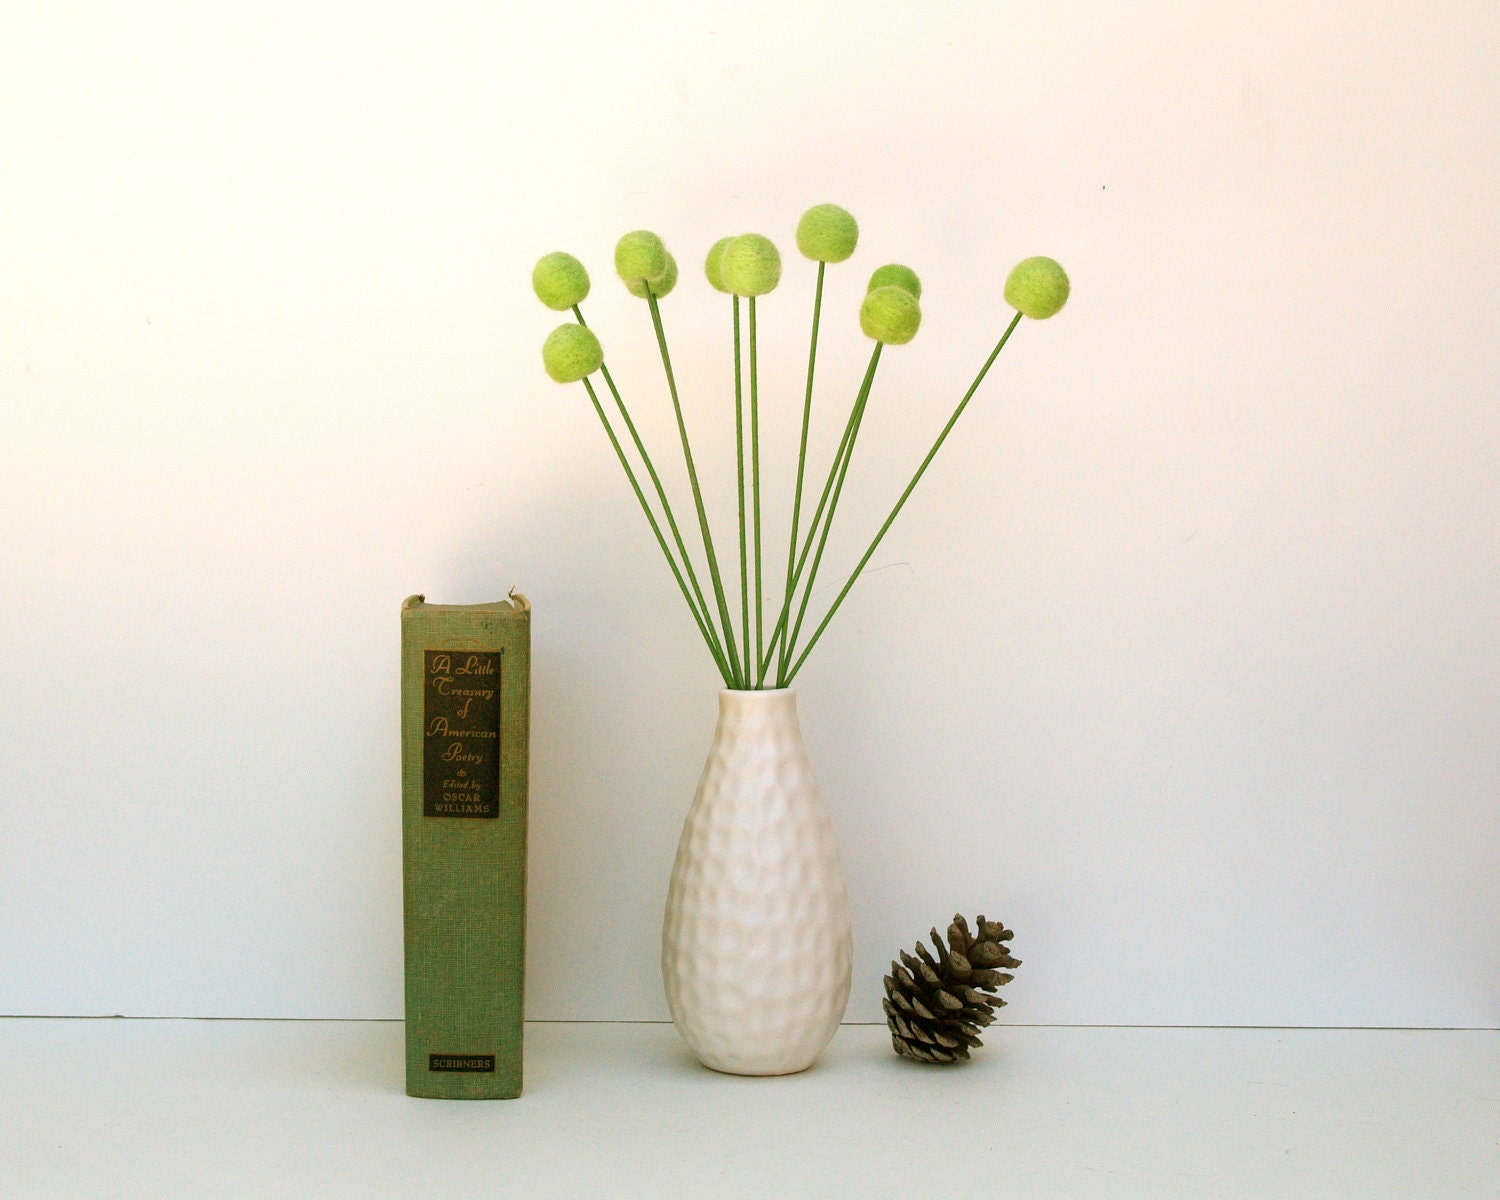 lime green home decor craspedia flowers wool billy button ForLime Green Home Decorations